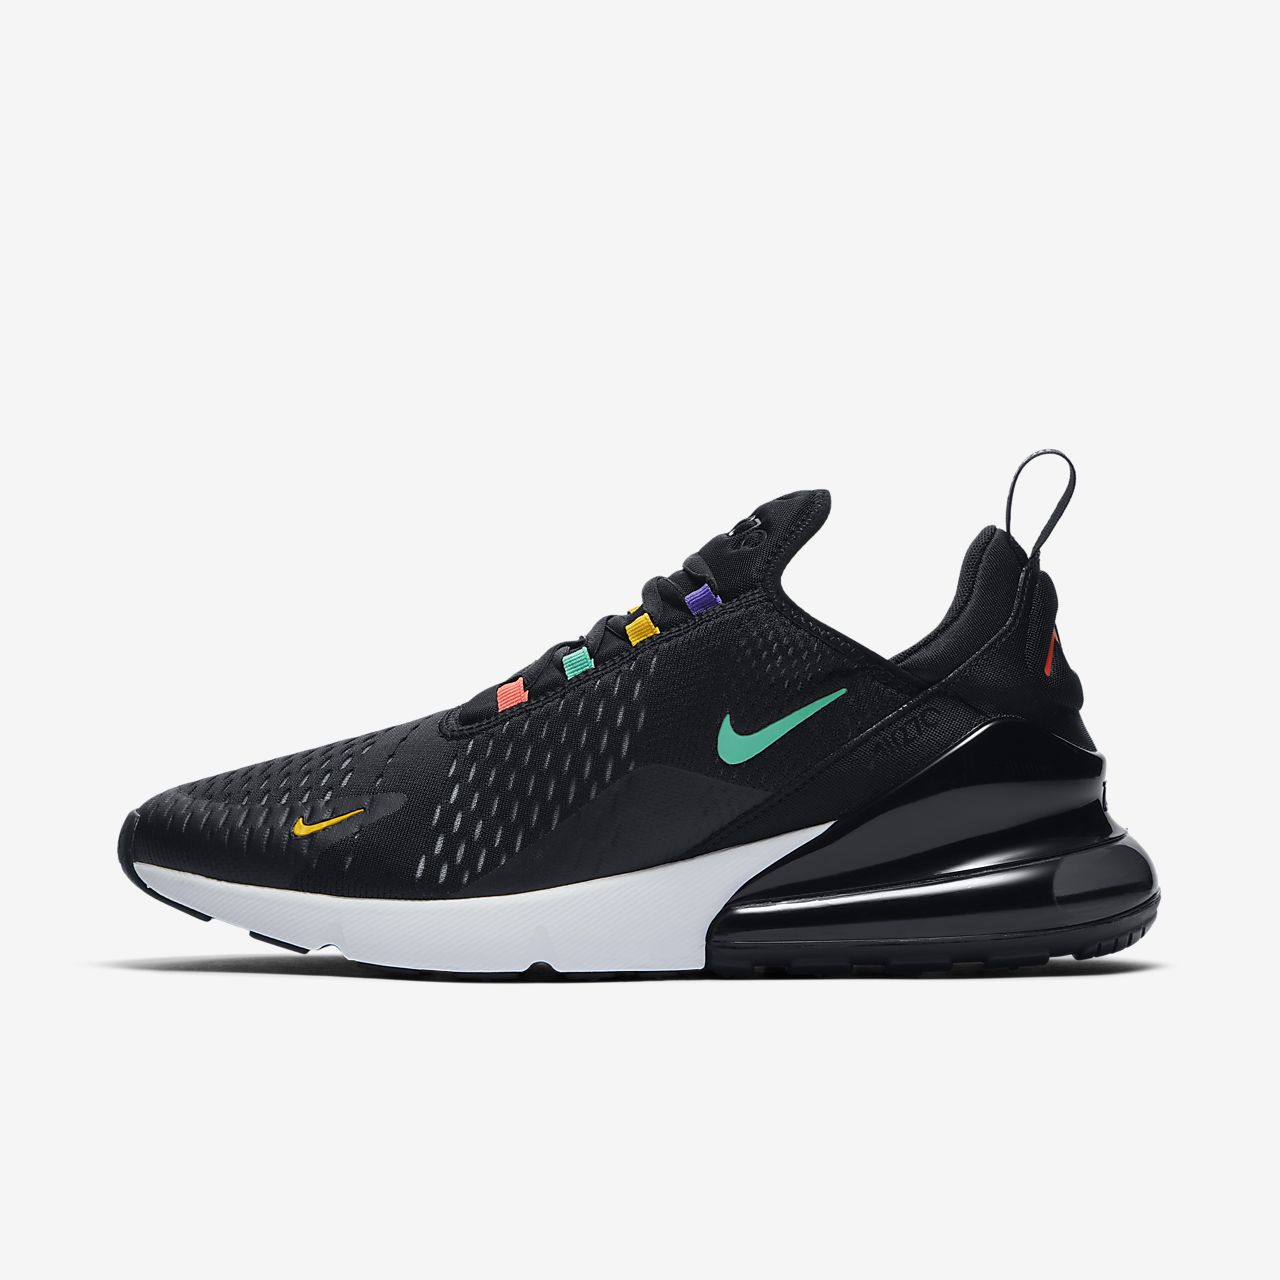 lowest price 1450e 8c4ea ... Nike Air Max 270 Men s Shoe